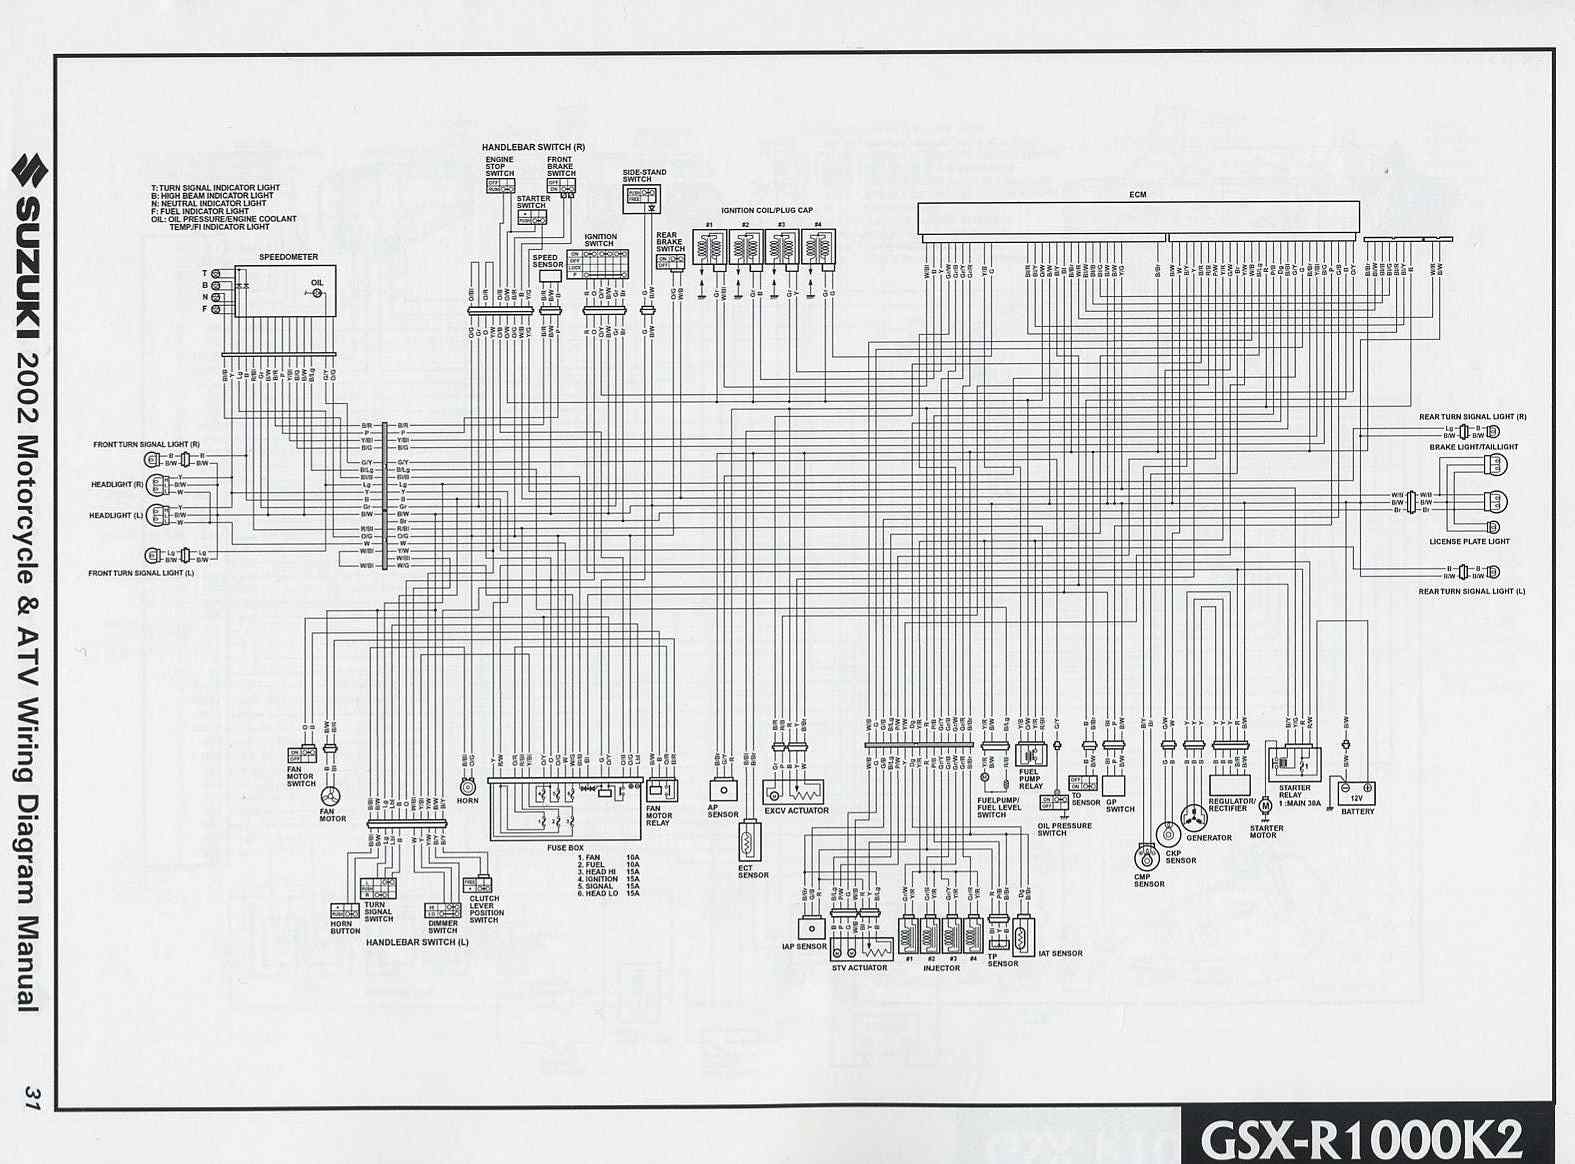 K7 Wiring Diagram Worksheet And Gsxr 1000 Schematics Rh Caltech Ctp Com 750